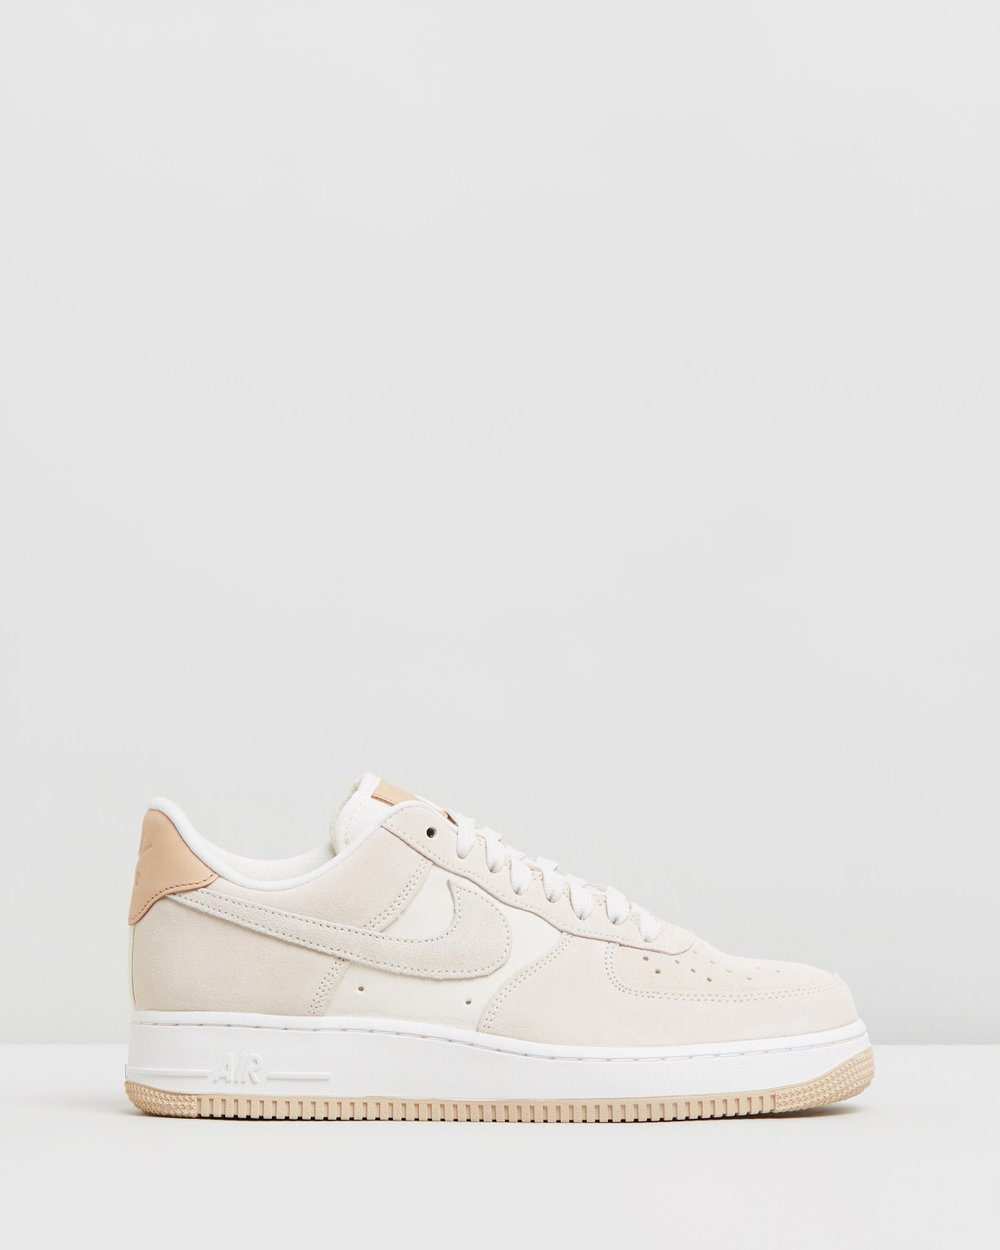 online retailer 00323 faa21 Air Force 1 '07 Premium Shoes - Women's